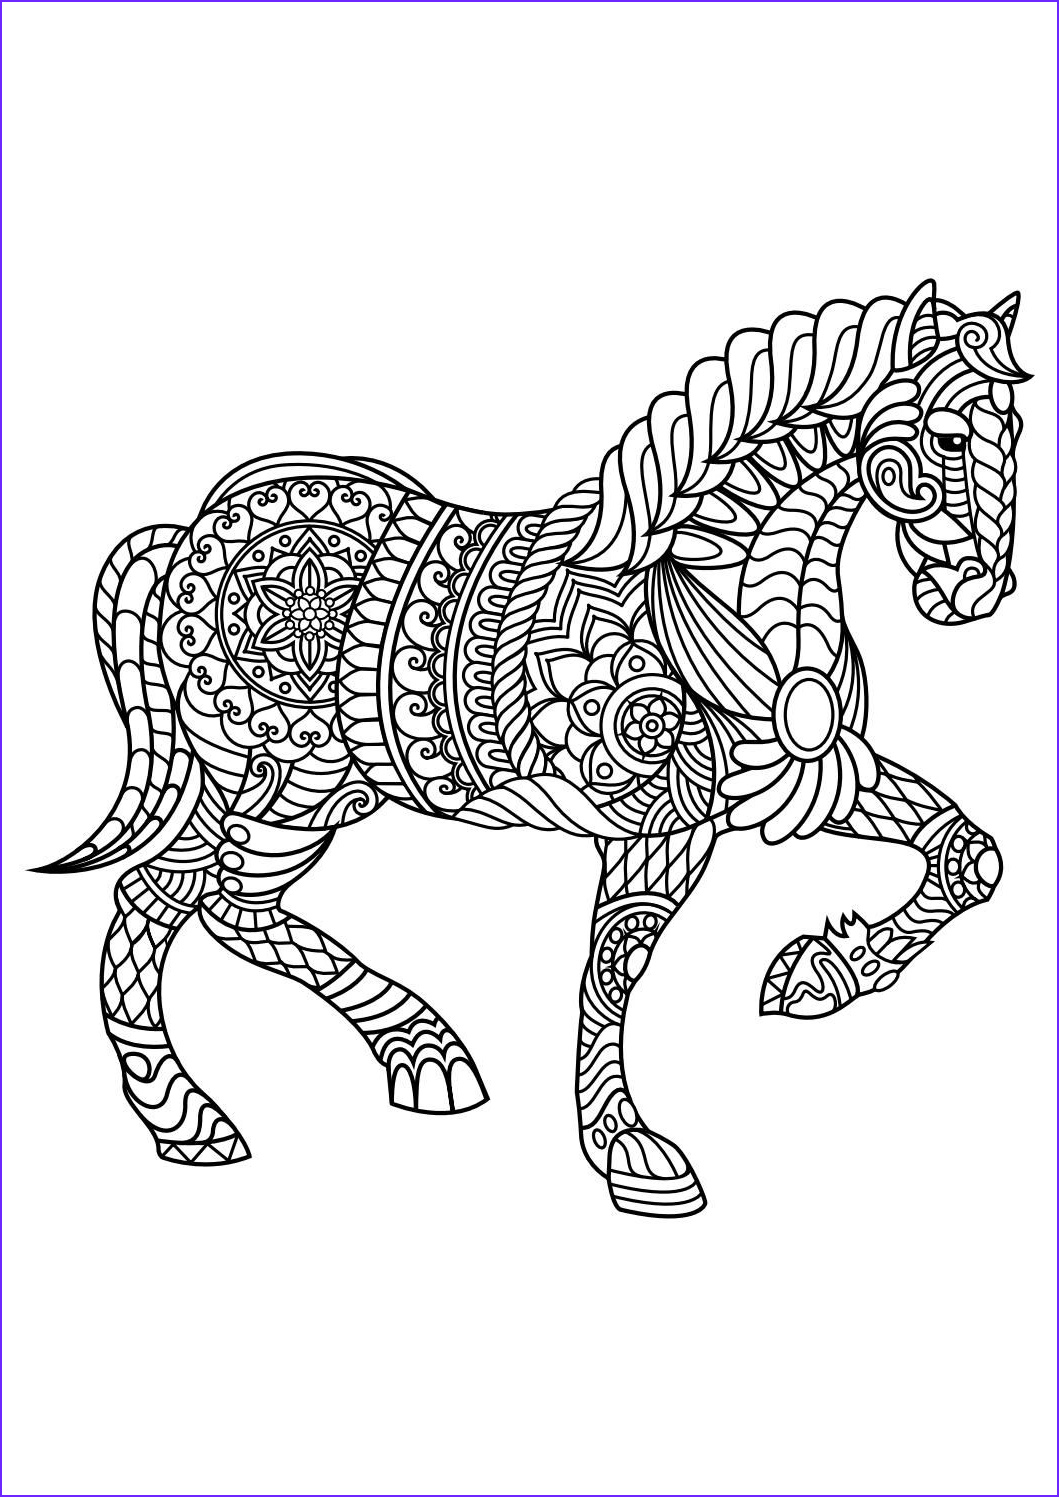 Animal Coloring Pages Pdf Inspirational Photography Animal Coloring Pages Pdf Coloring Animals